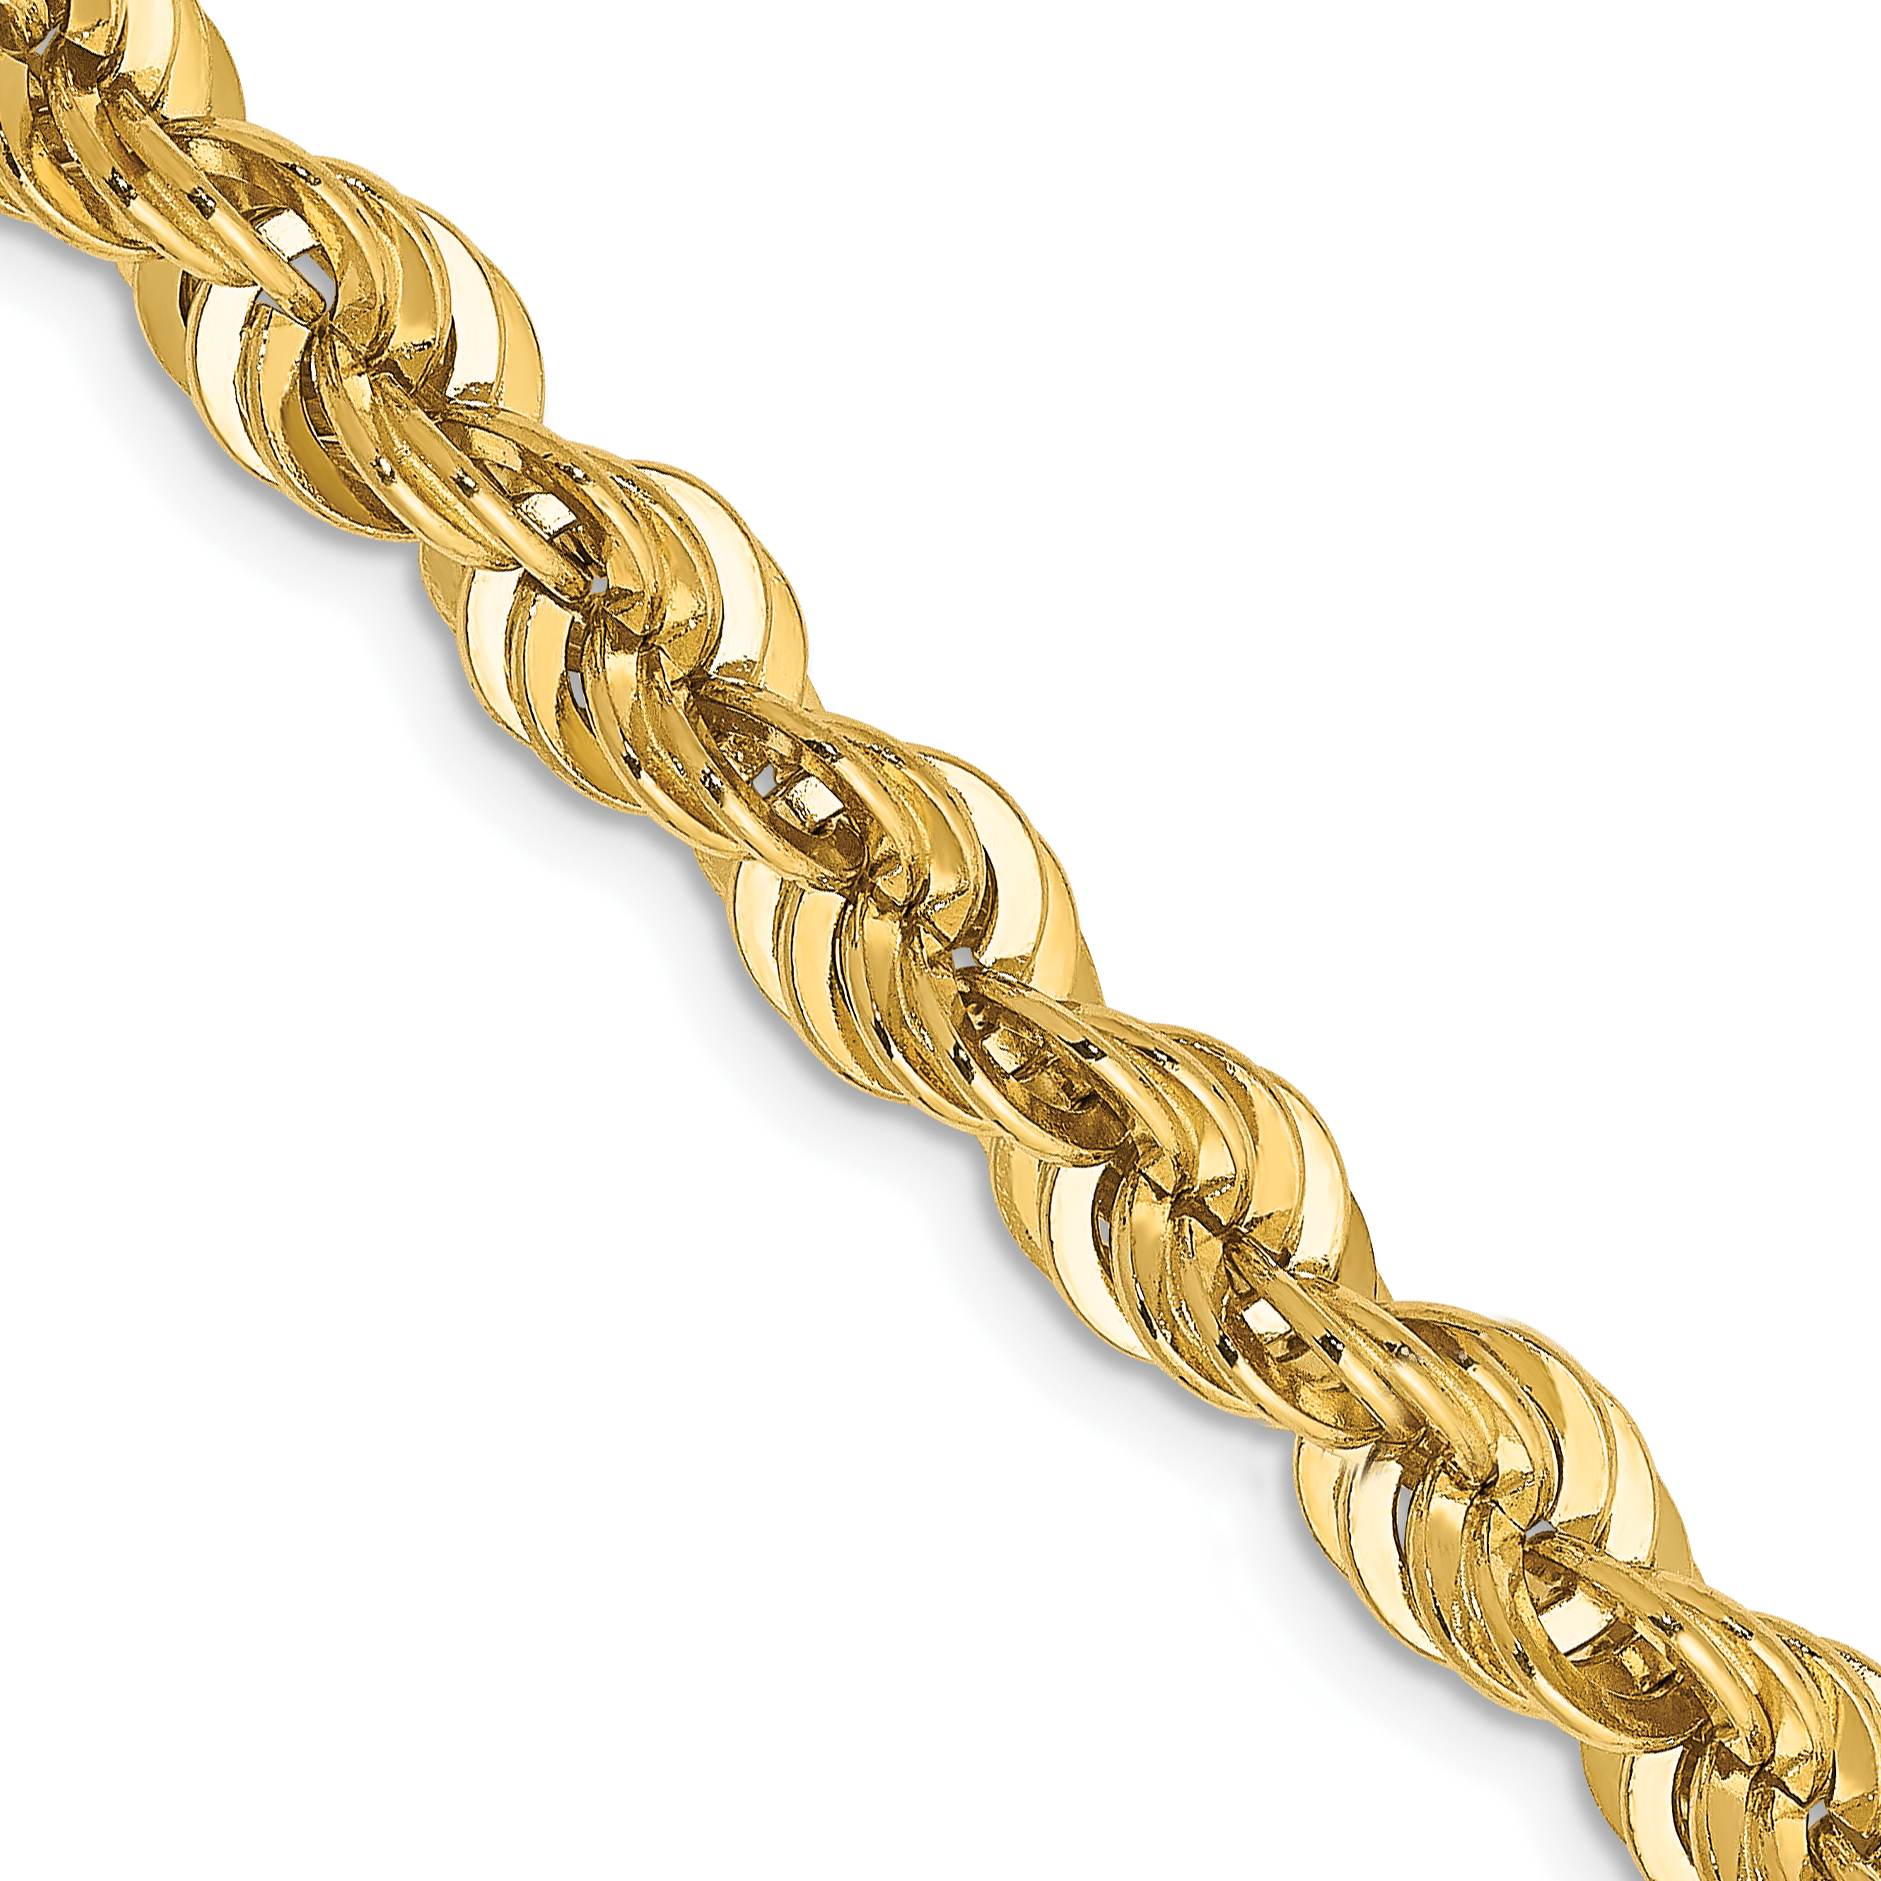 can chain inches find yellow chains handmade rope regular out you gold pin anklet